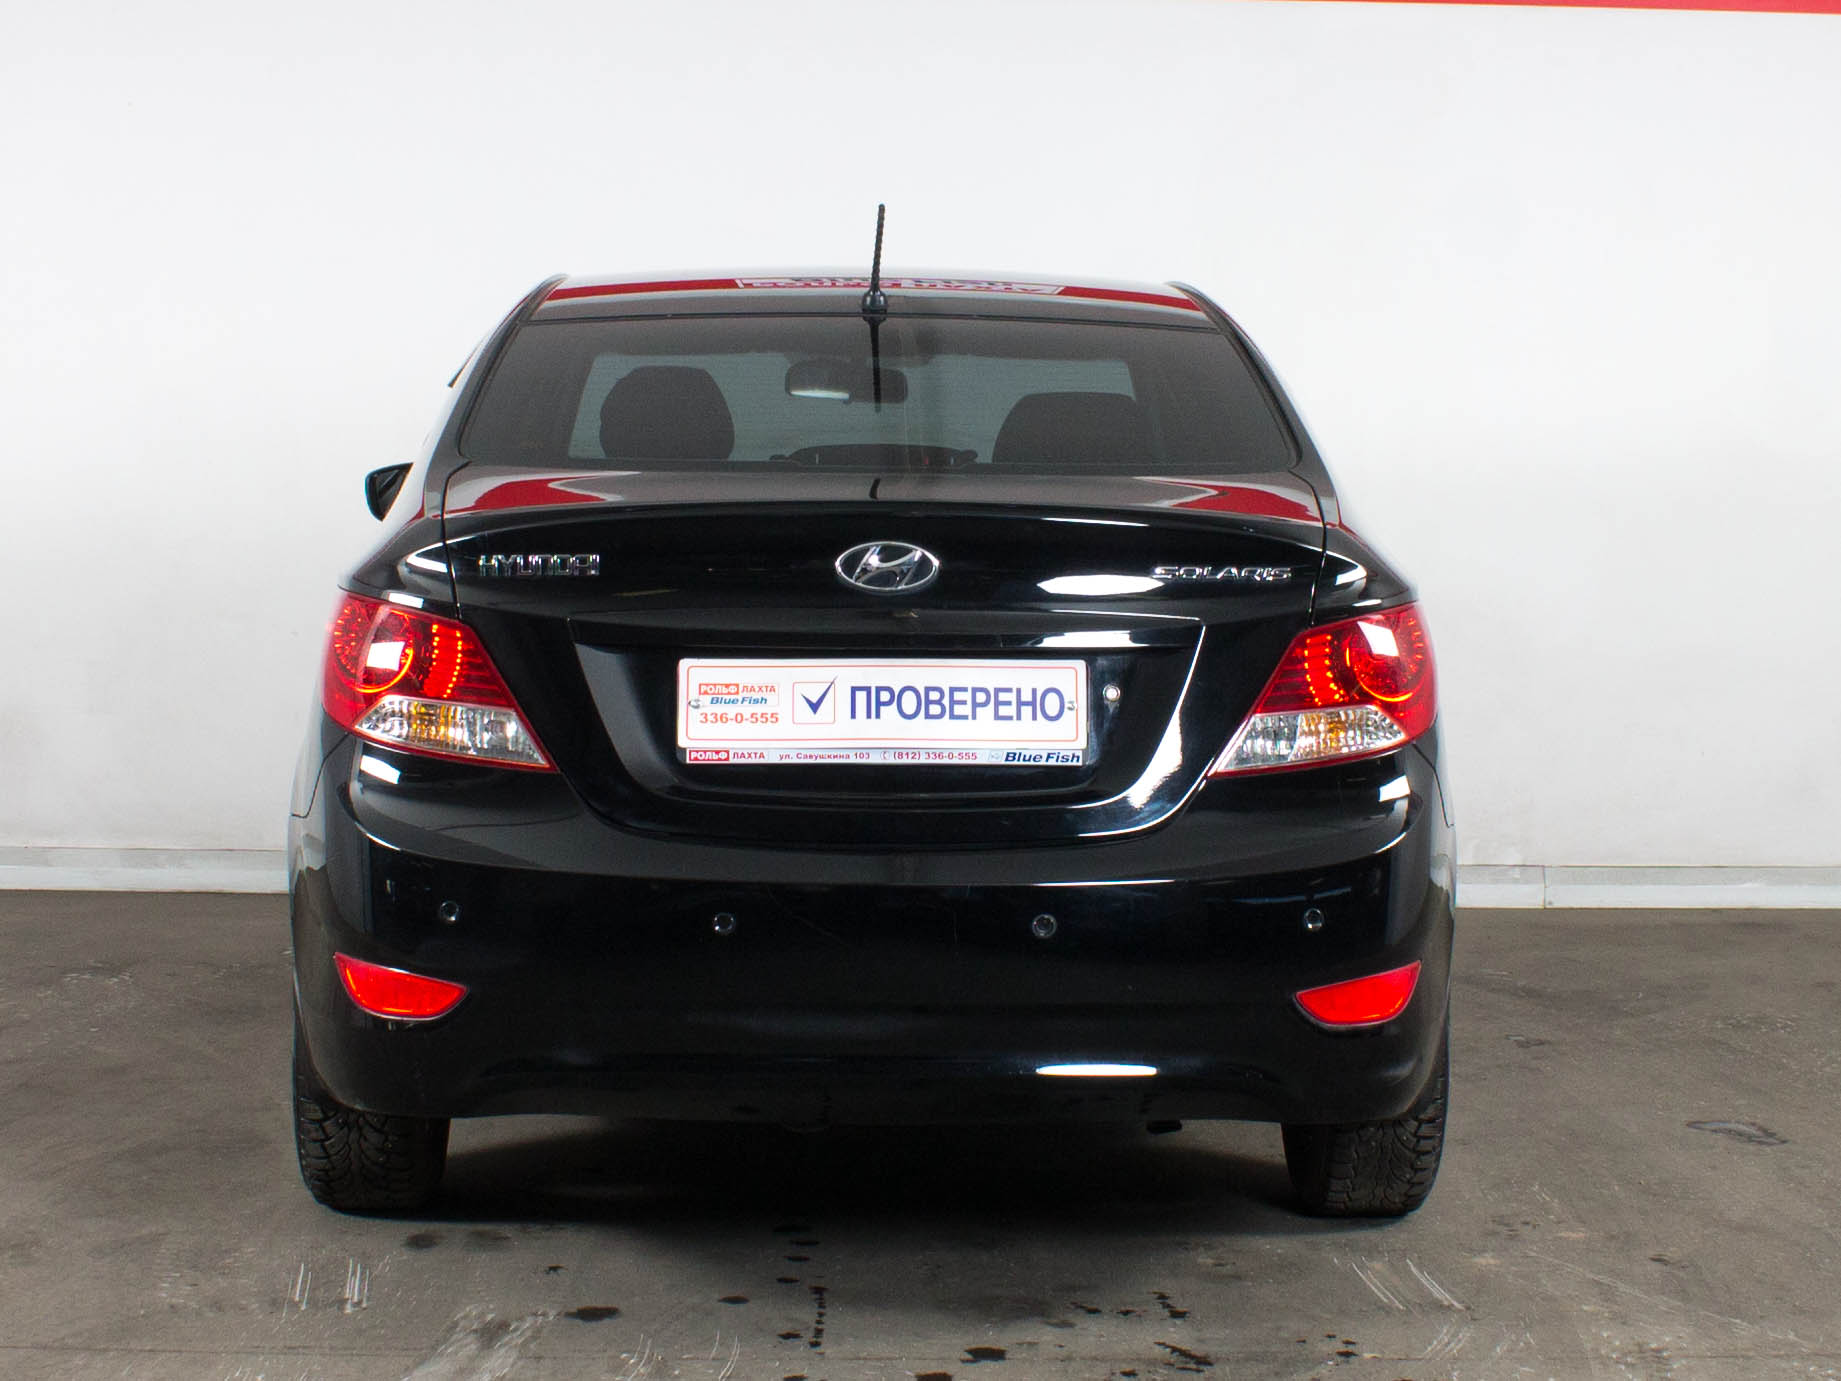 Hyundai Solaris 1.6 2012 photo - 4